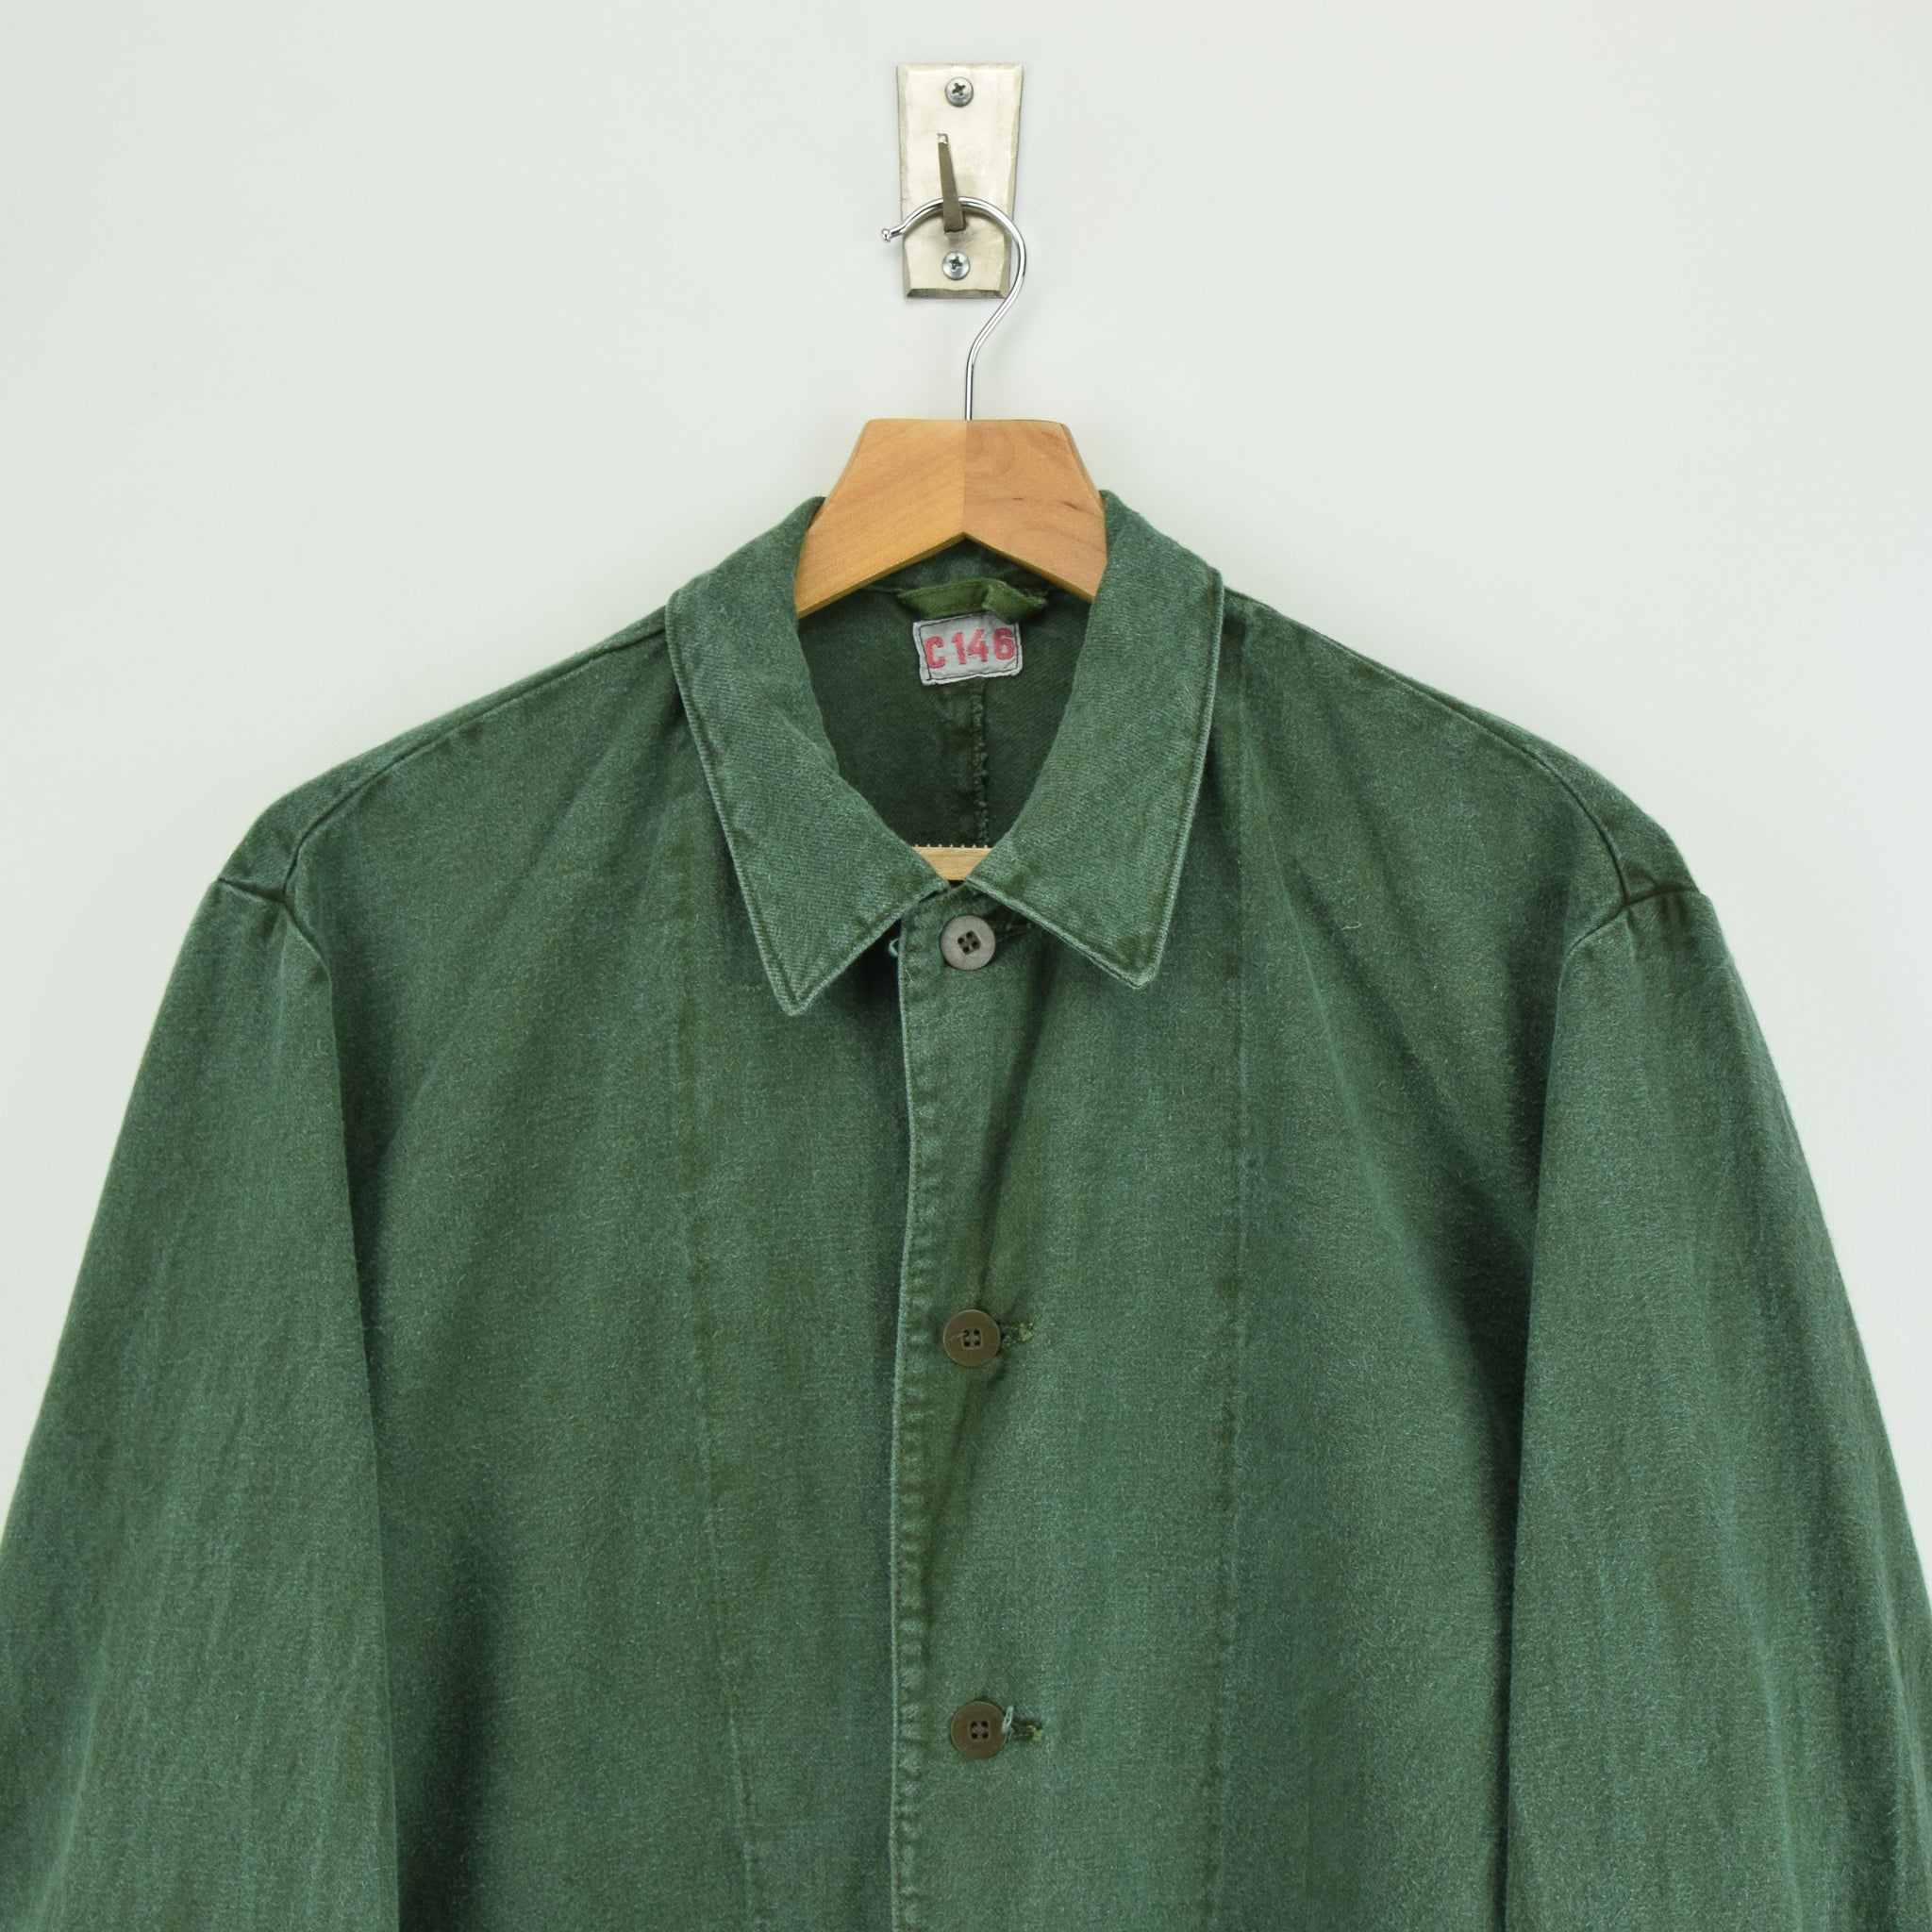 Vintage Swedish Worker Style Distressed Green Military Cotton Field Jacket M / L chest